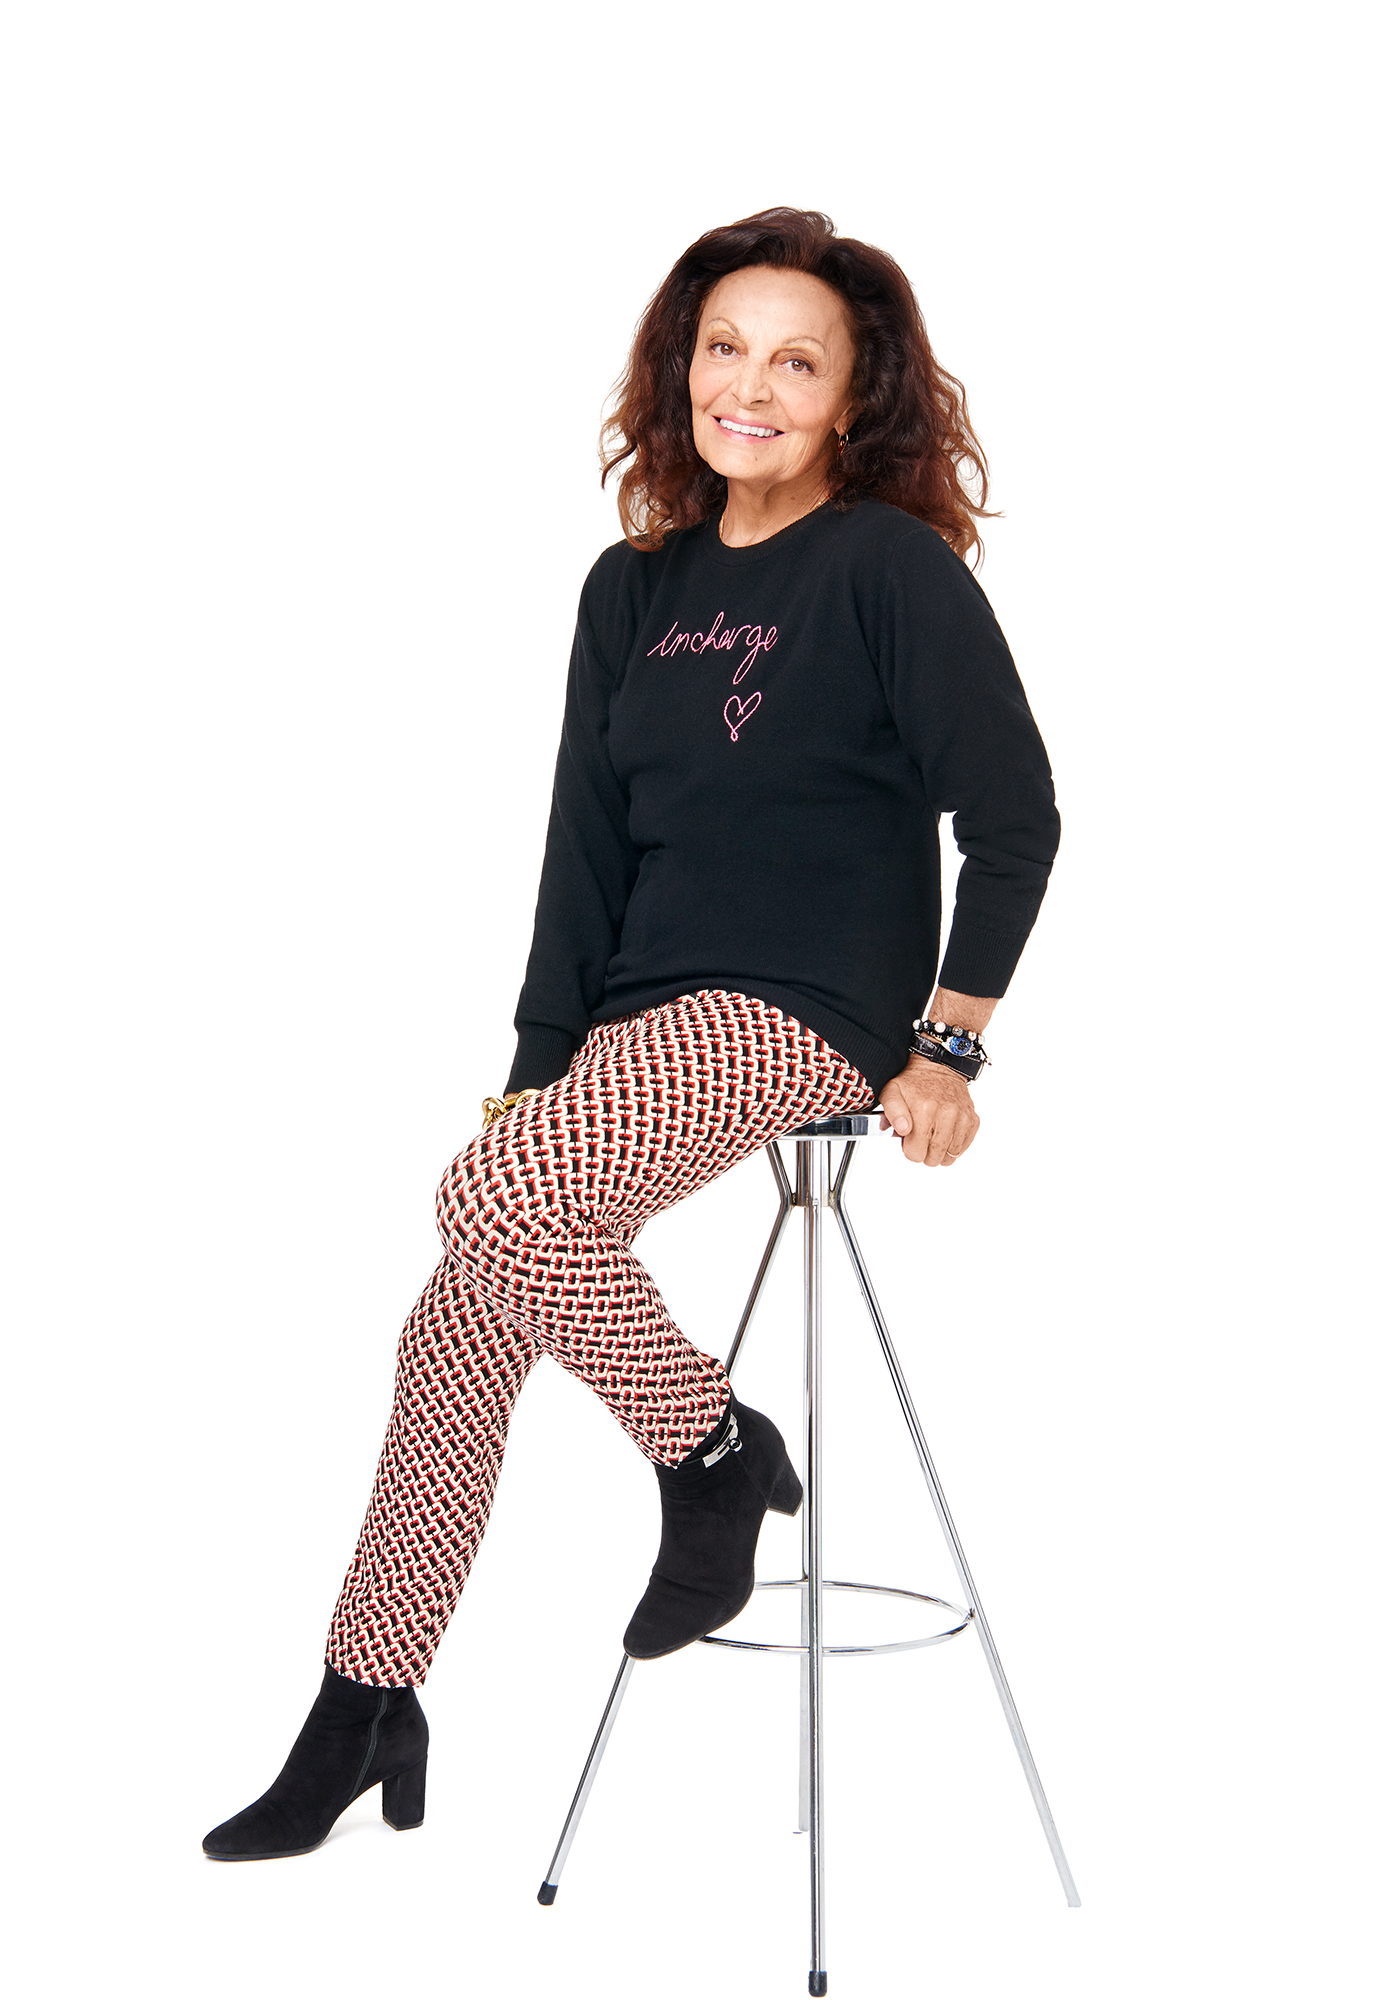 4 Lessons On Being #InCharge From Diane Von Furstenberg